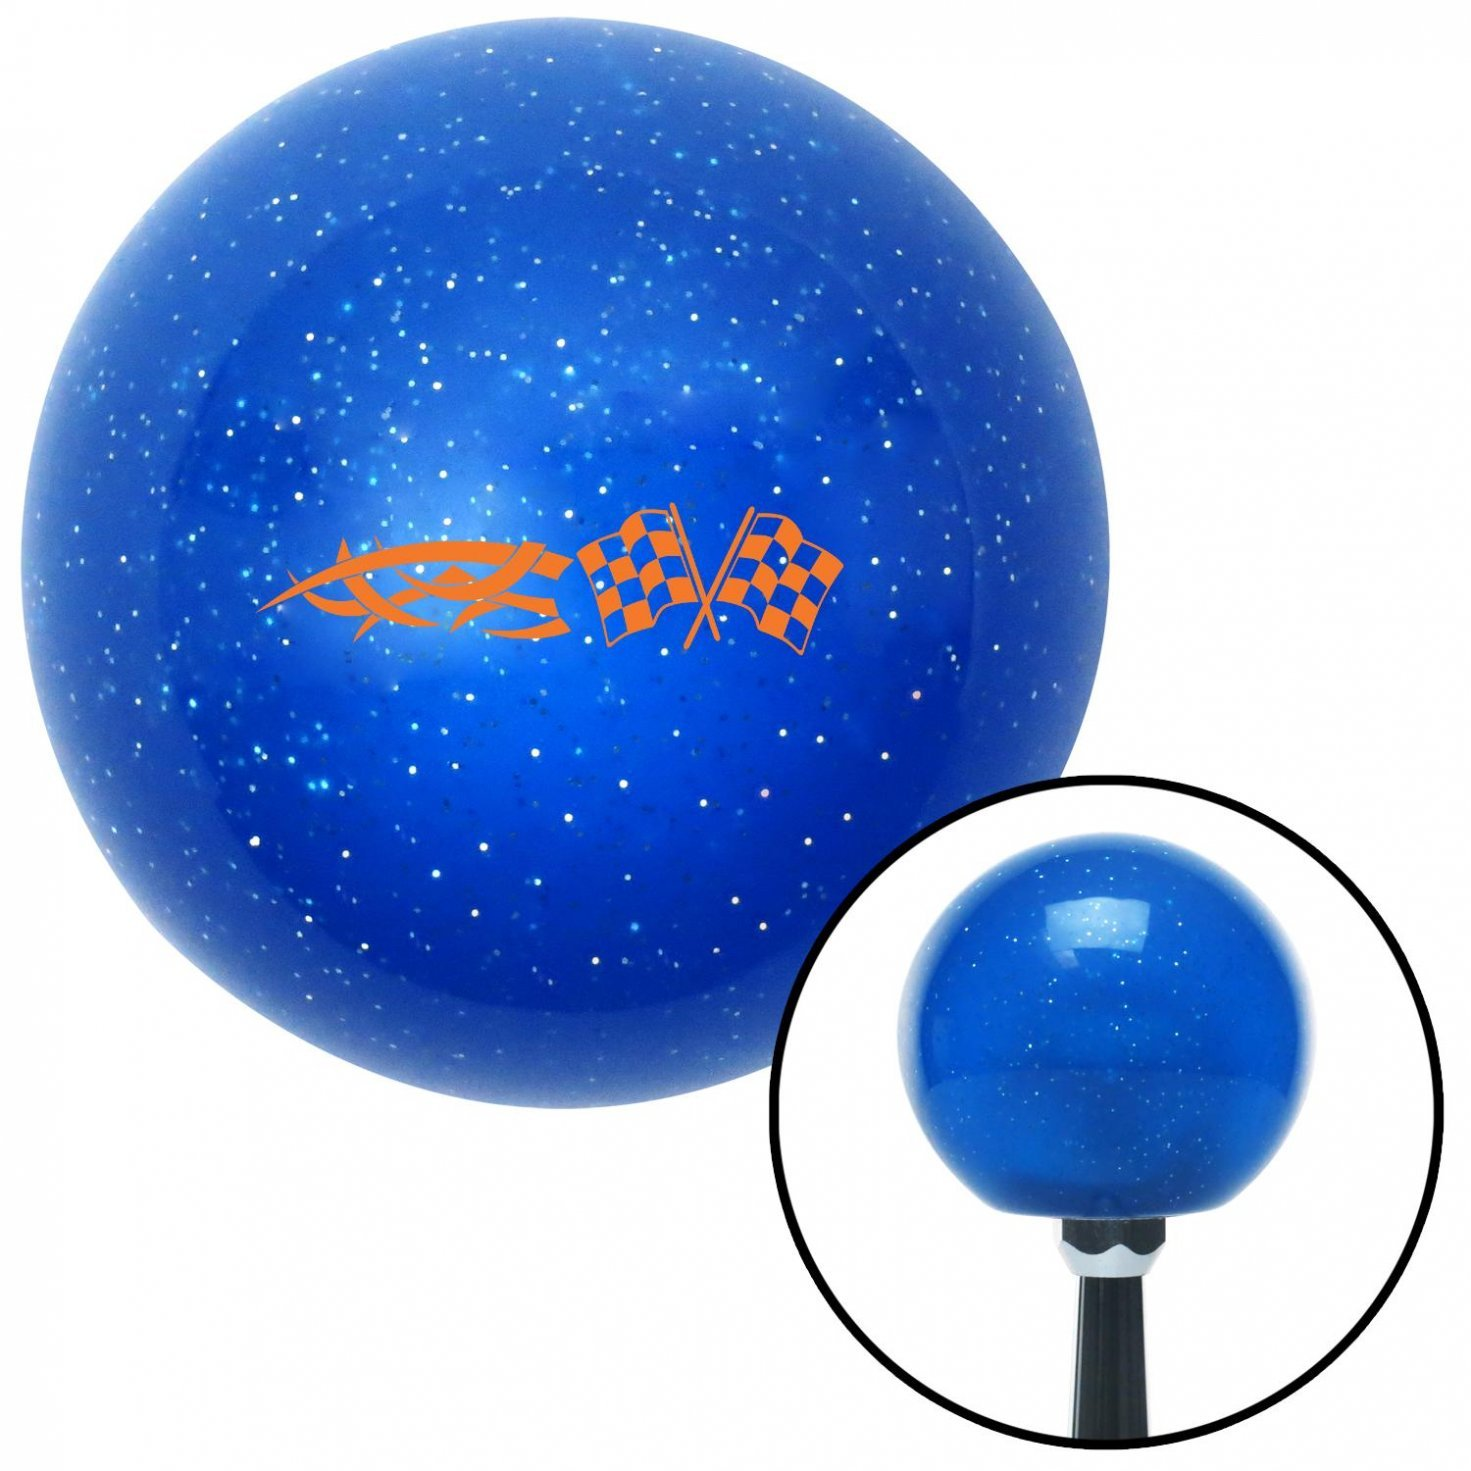 American Shifter 21595 Blue Metal Flake Shift Knob with 16mm x 1.5 Insert Orange Tribal Sign /& Racing Flags